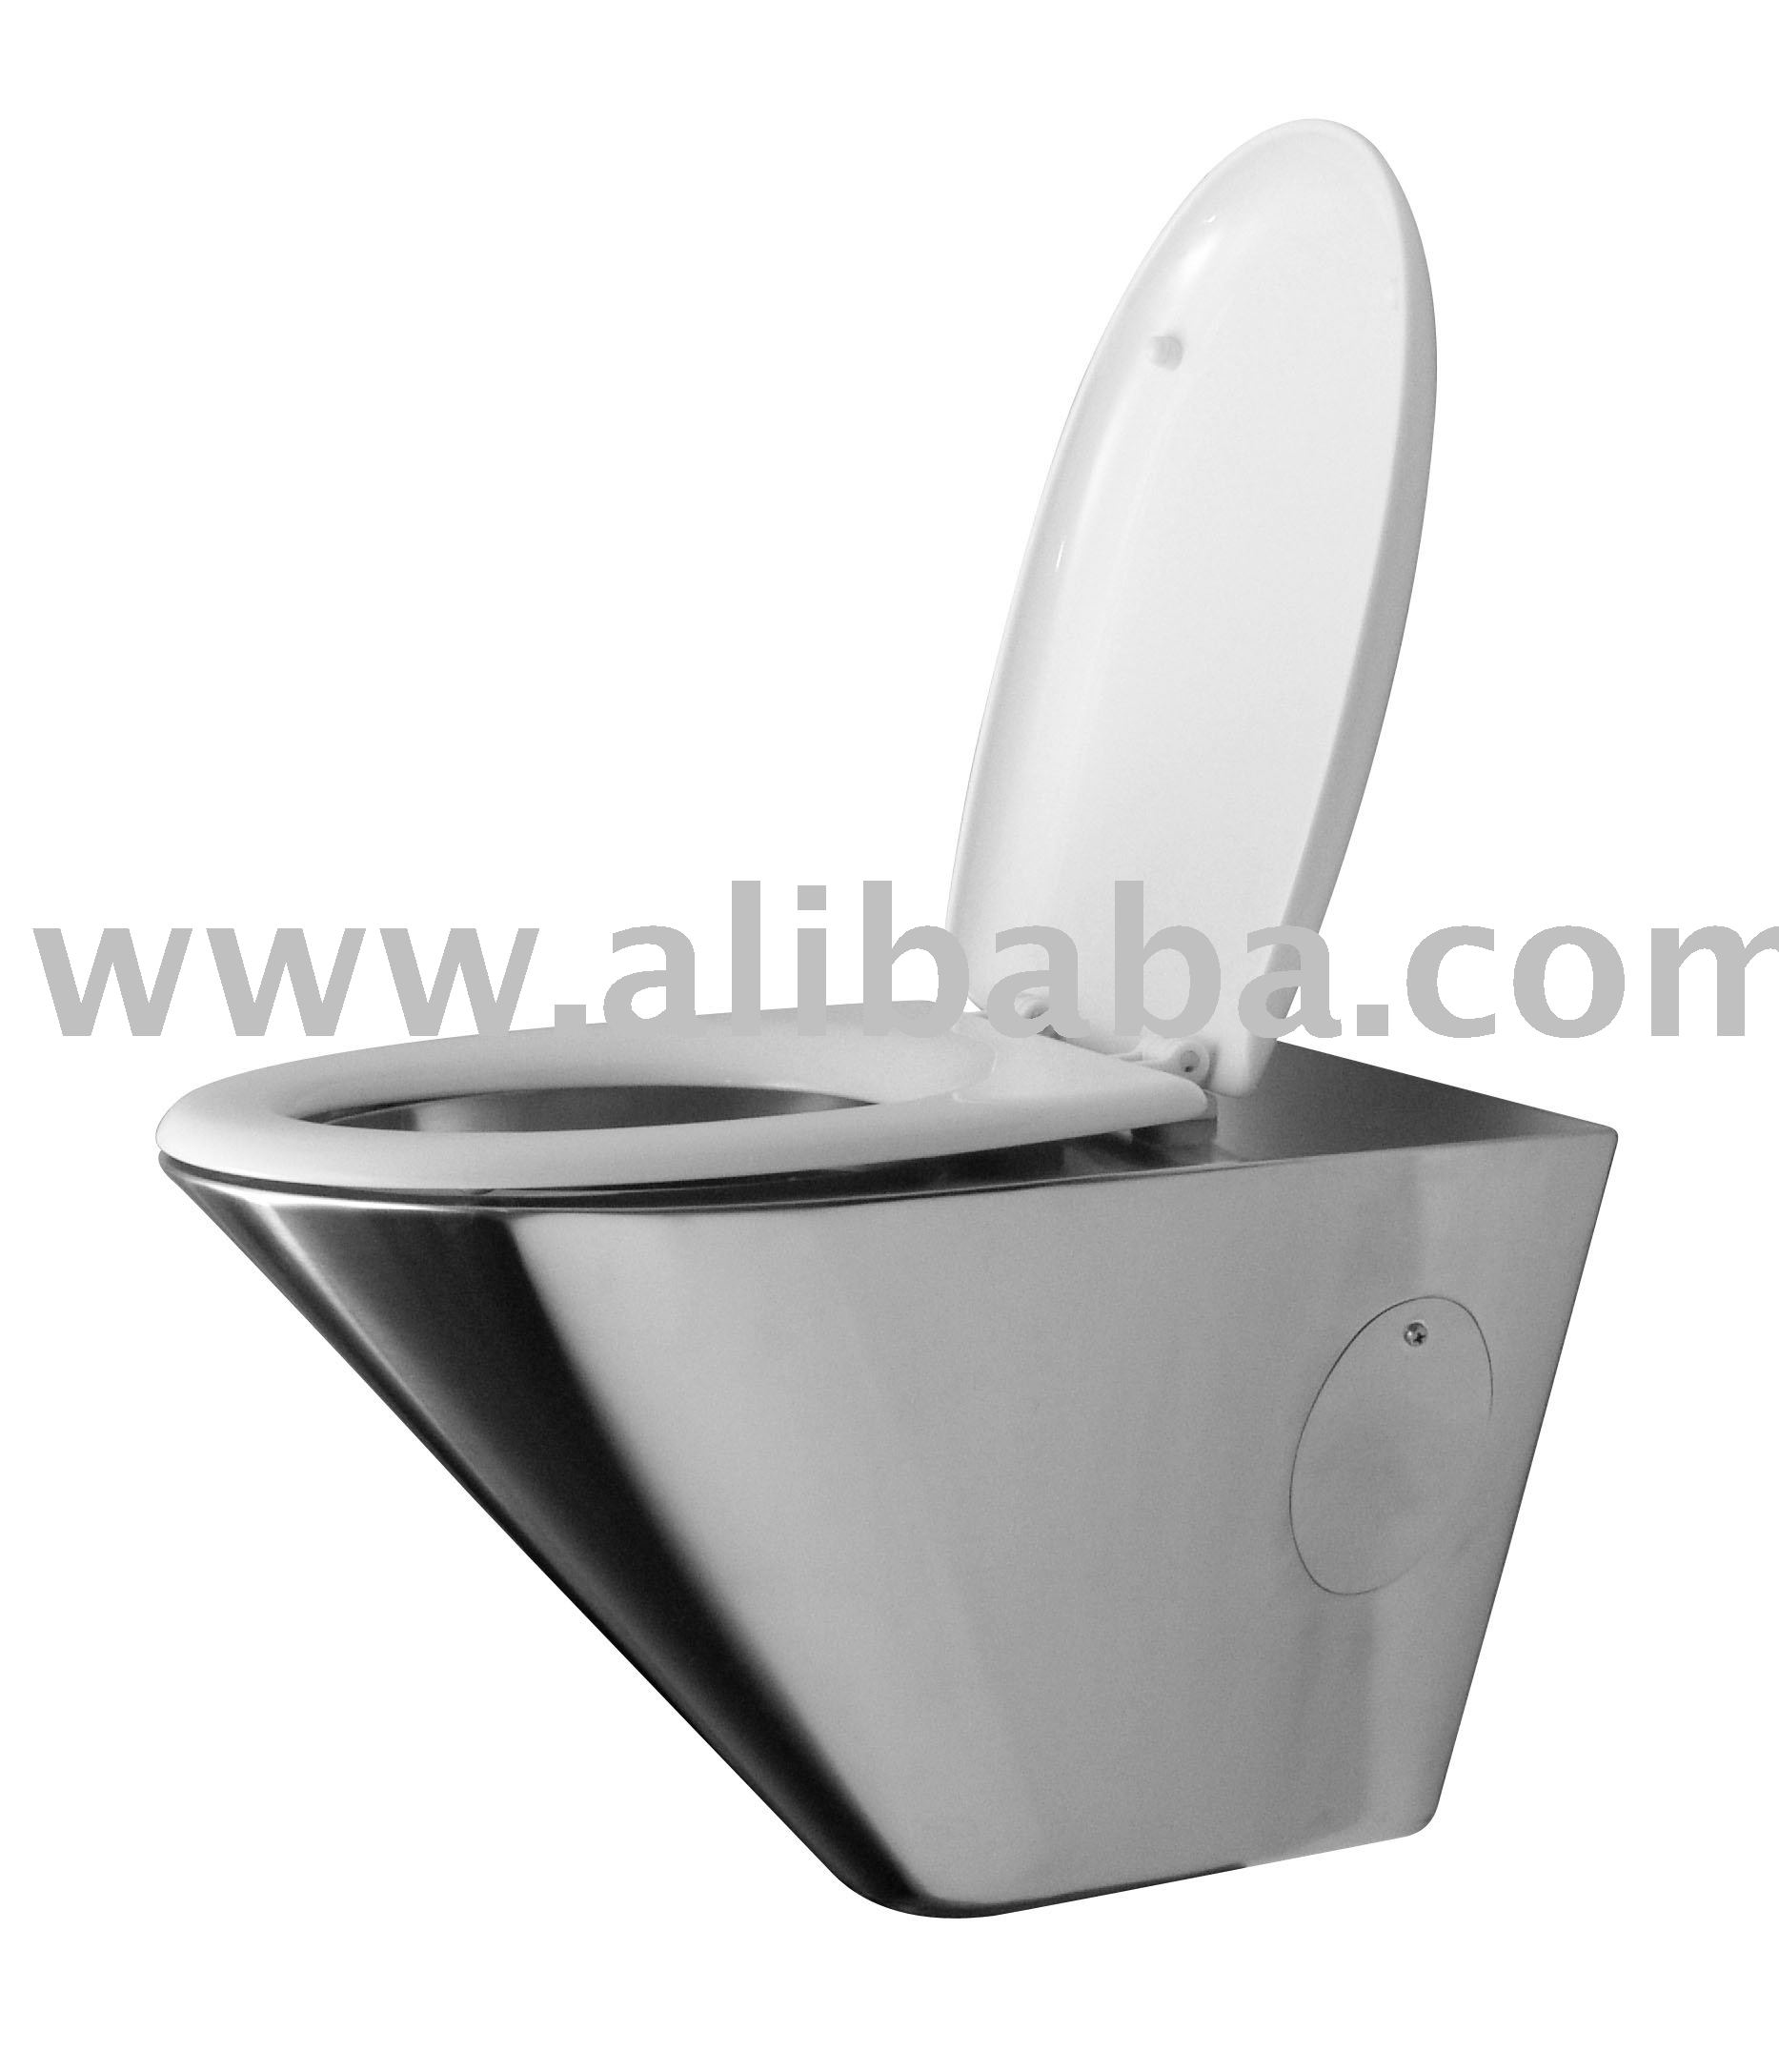 Stainless Steel Prison Toilet High Quality High Quality Stainles Steel AISI 304 NRM6036B - Stainless Steel Toilet